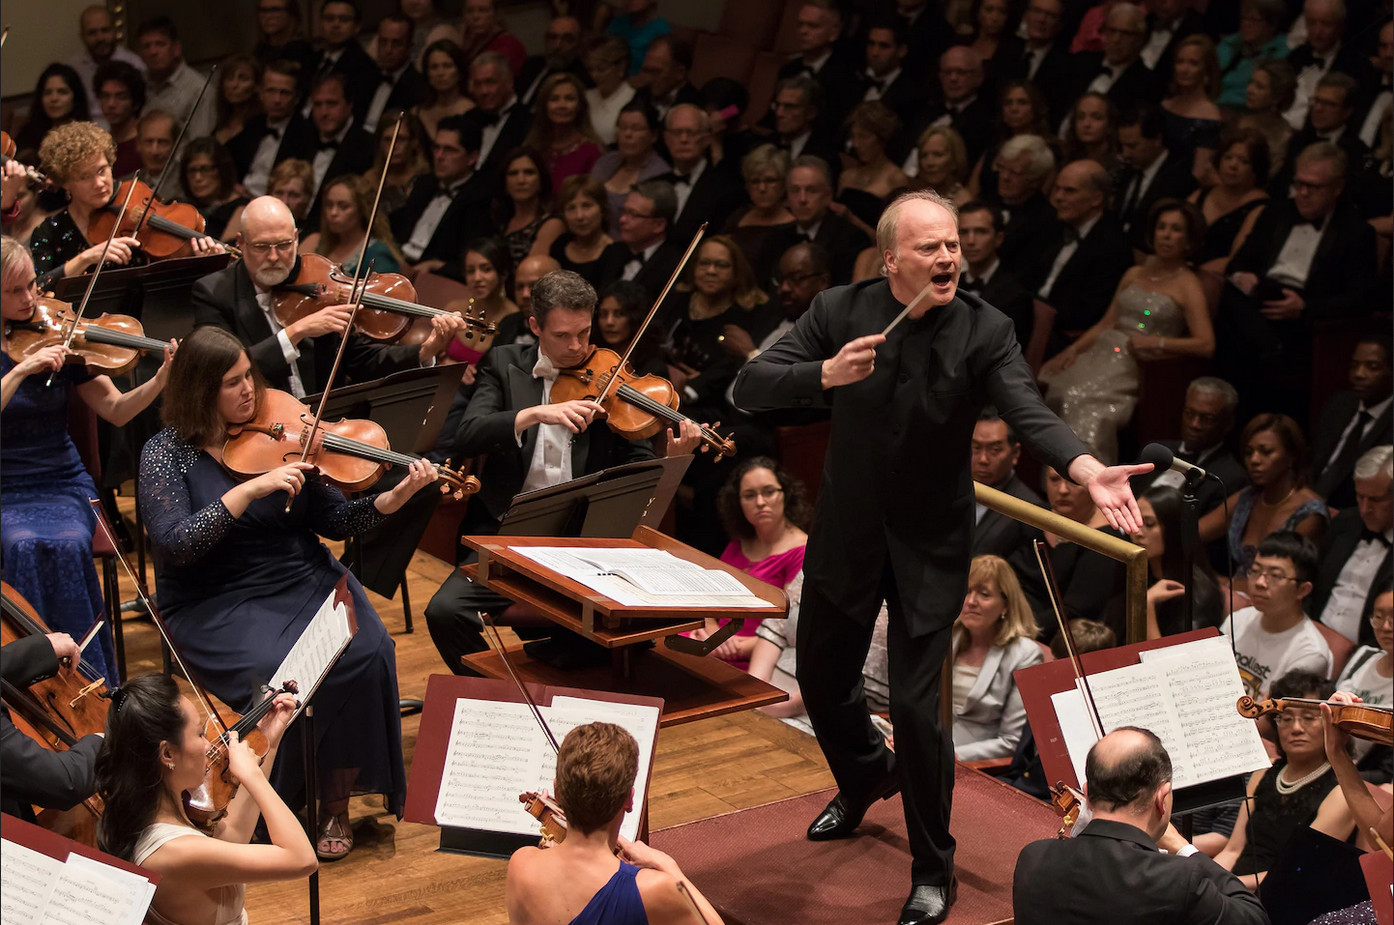 National Symphony Orchestra Gets $25 Million, Sacks Musicians Anyway